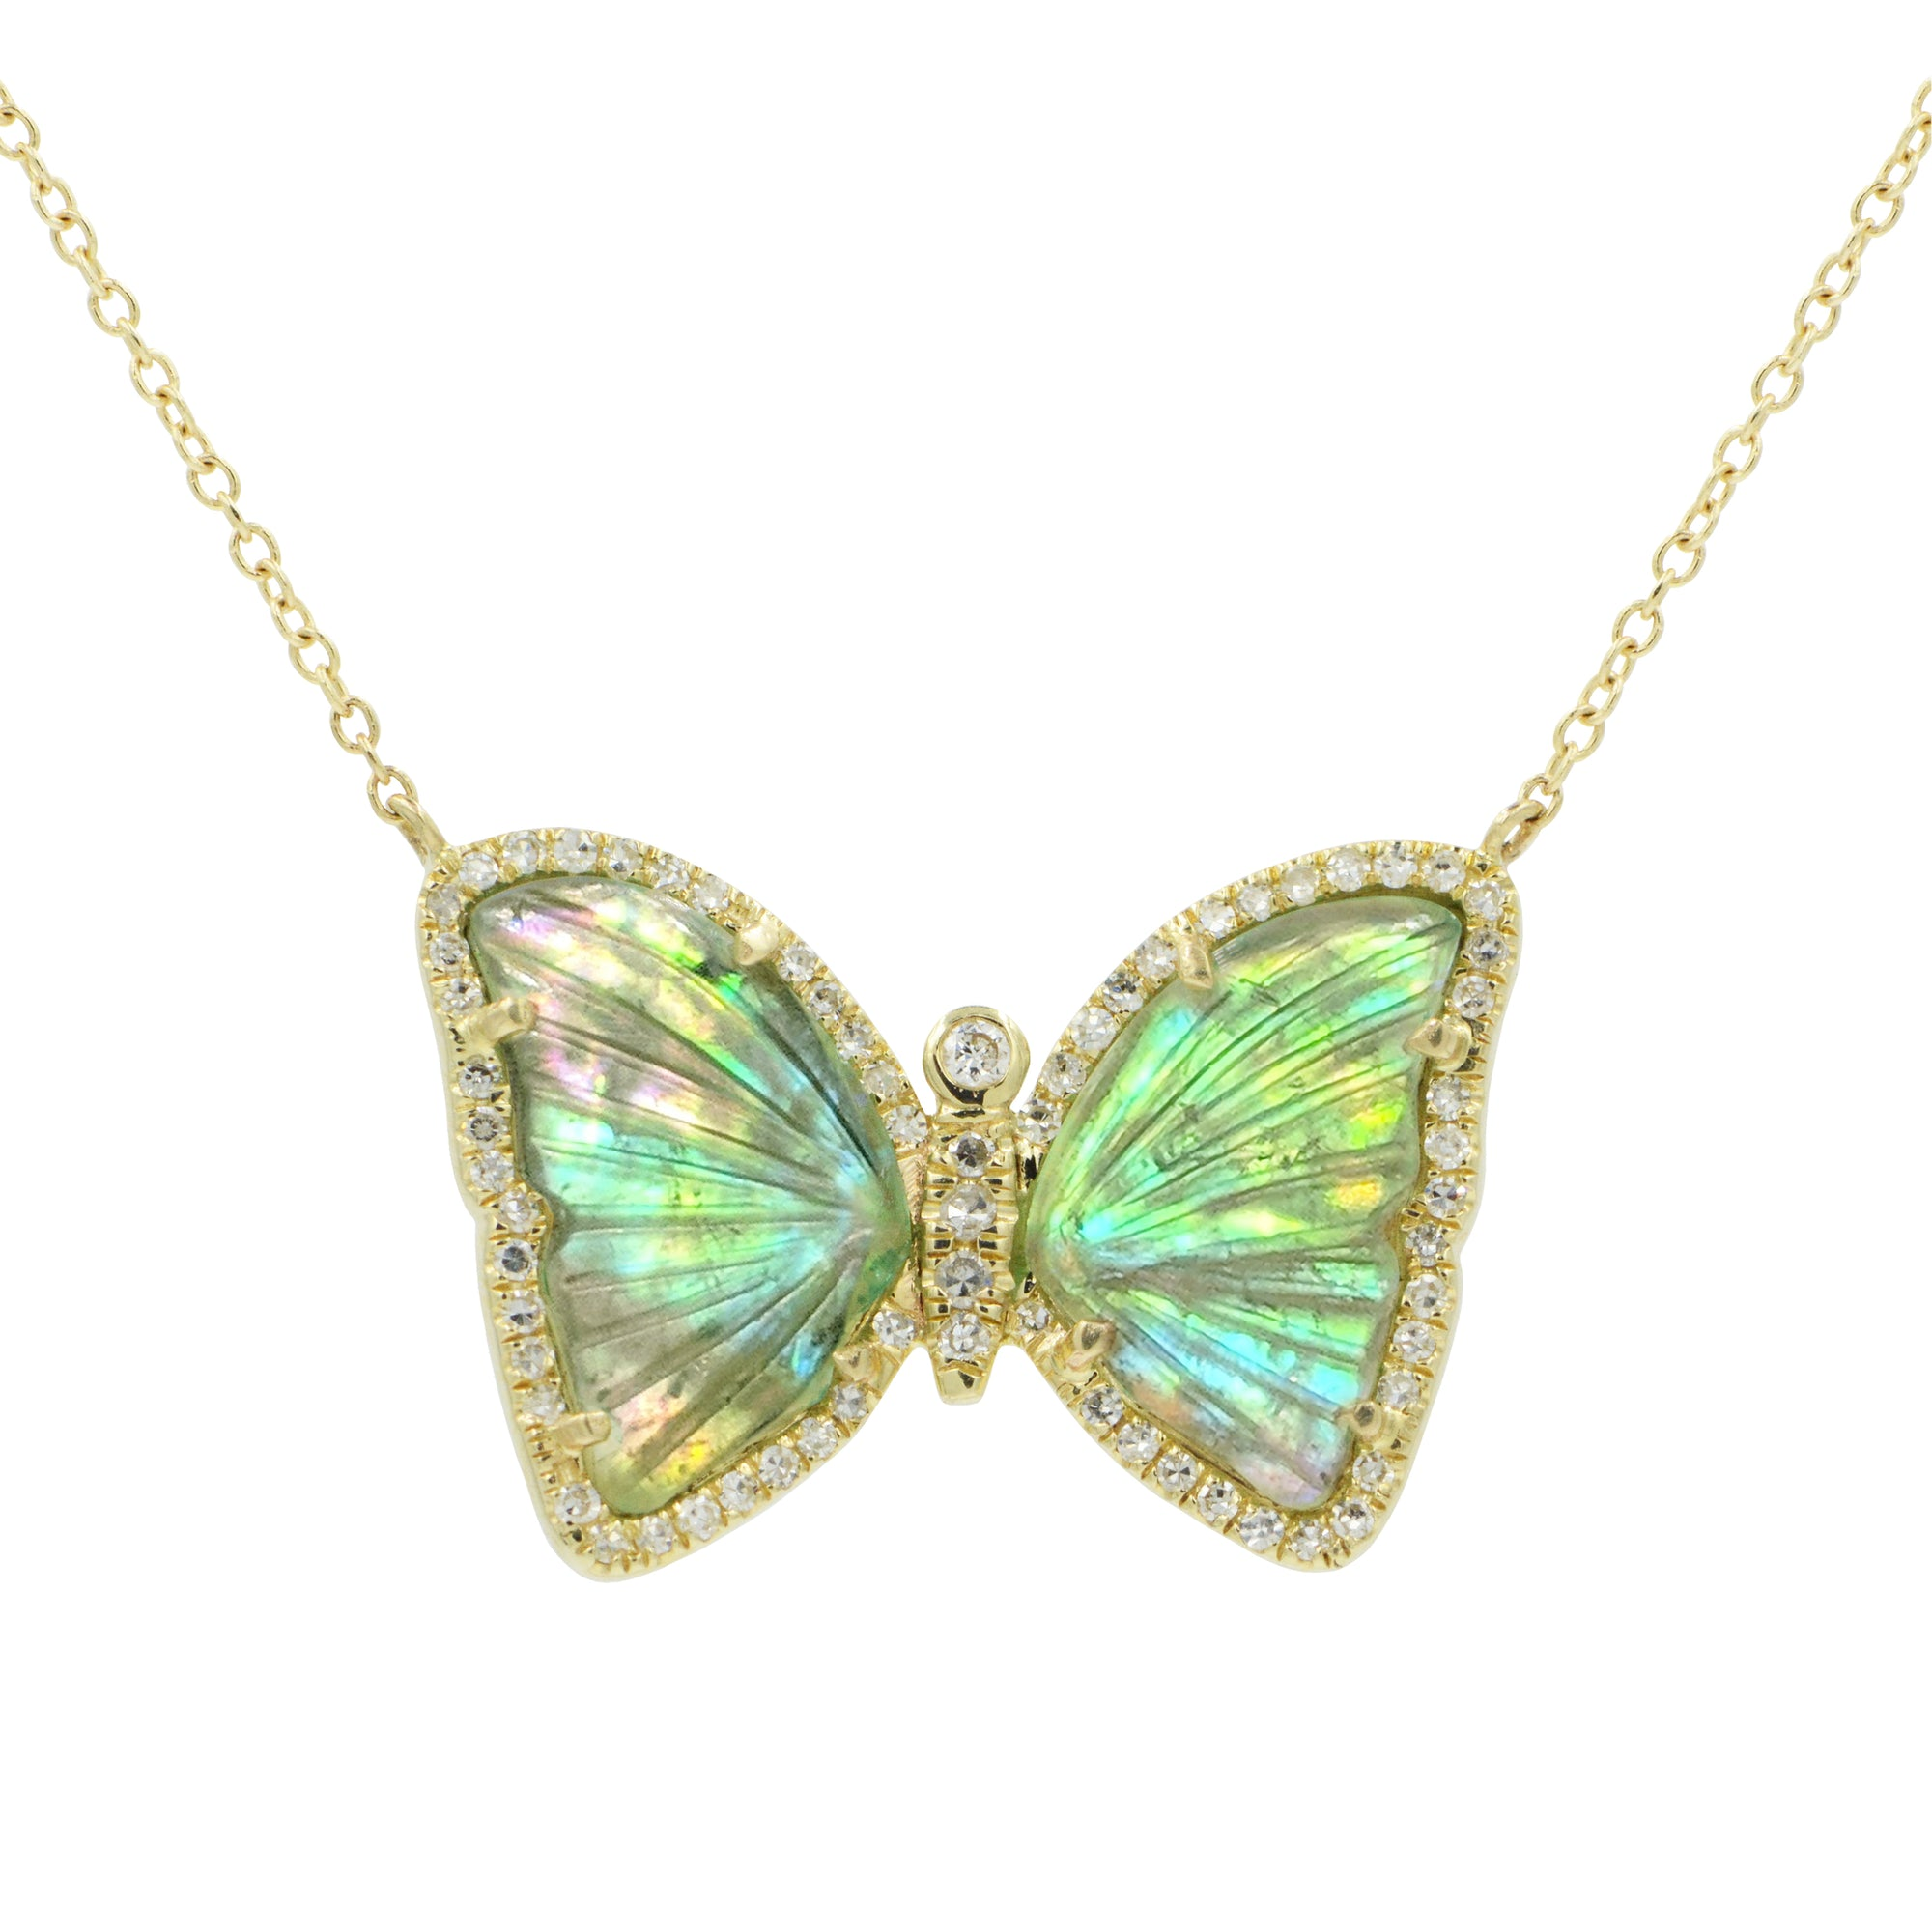 Butterfly Necklace With Green Tourmaline and Pearl